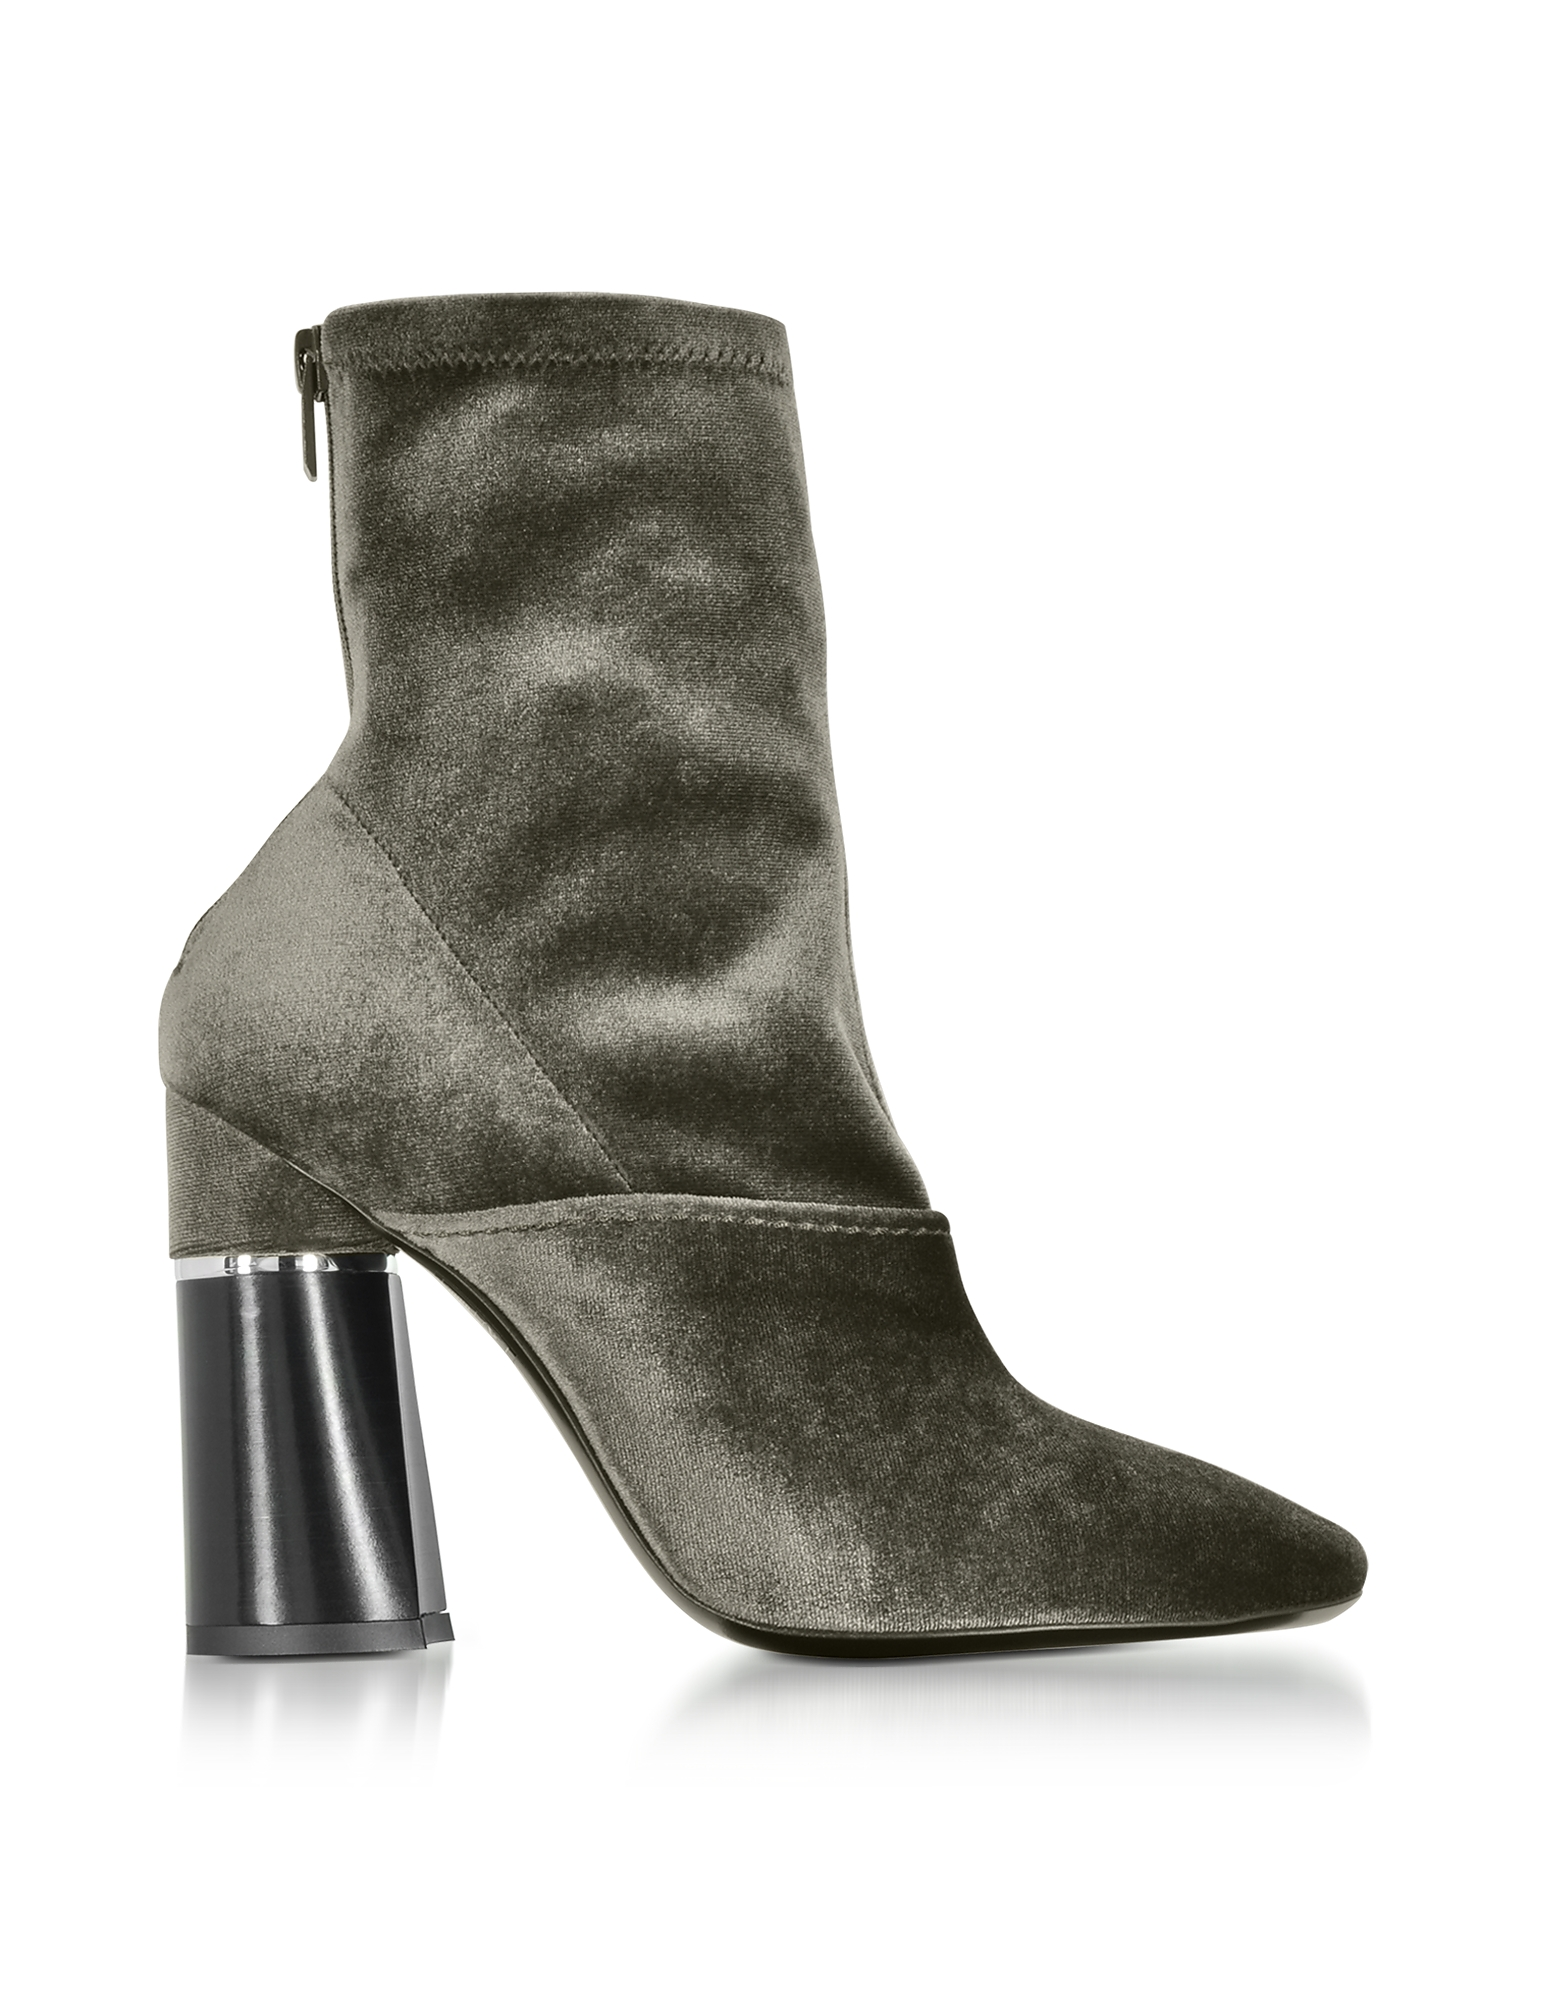 3.1 Phillip Lim Shoes, Kyoto Olive Velvet Stretch High Heel Ankle Boots